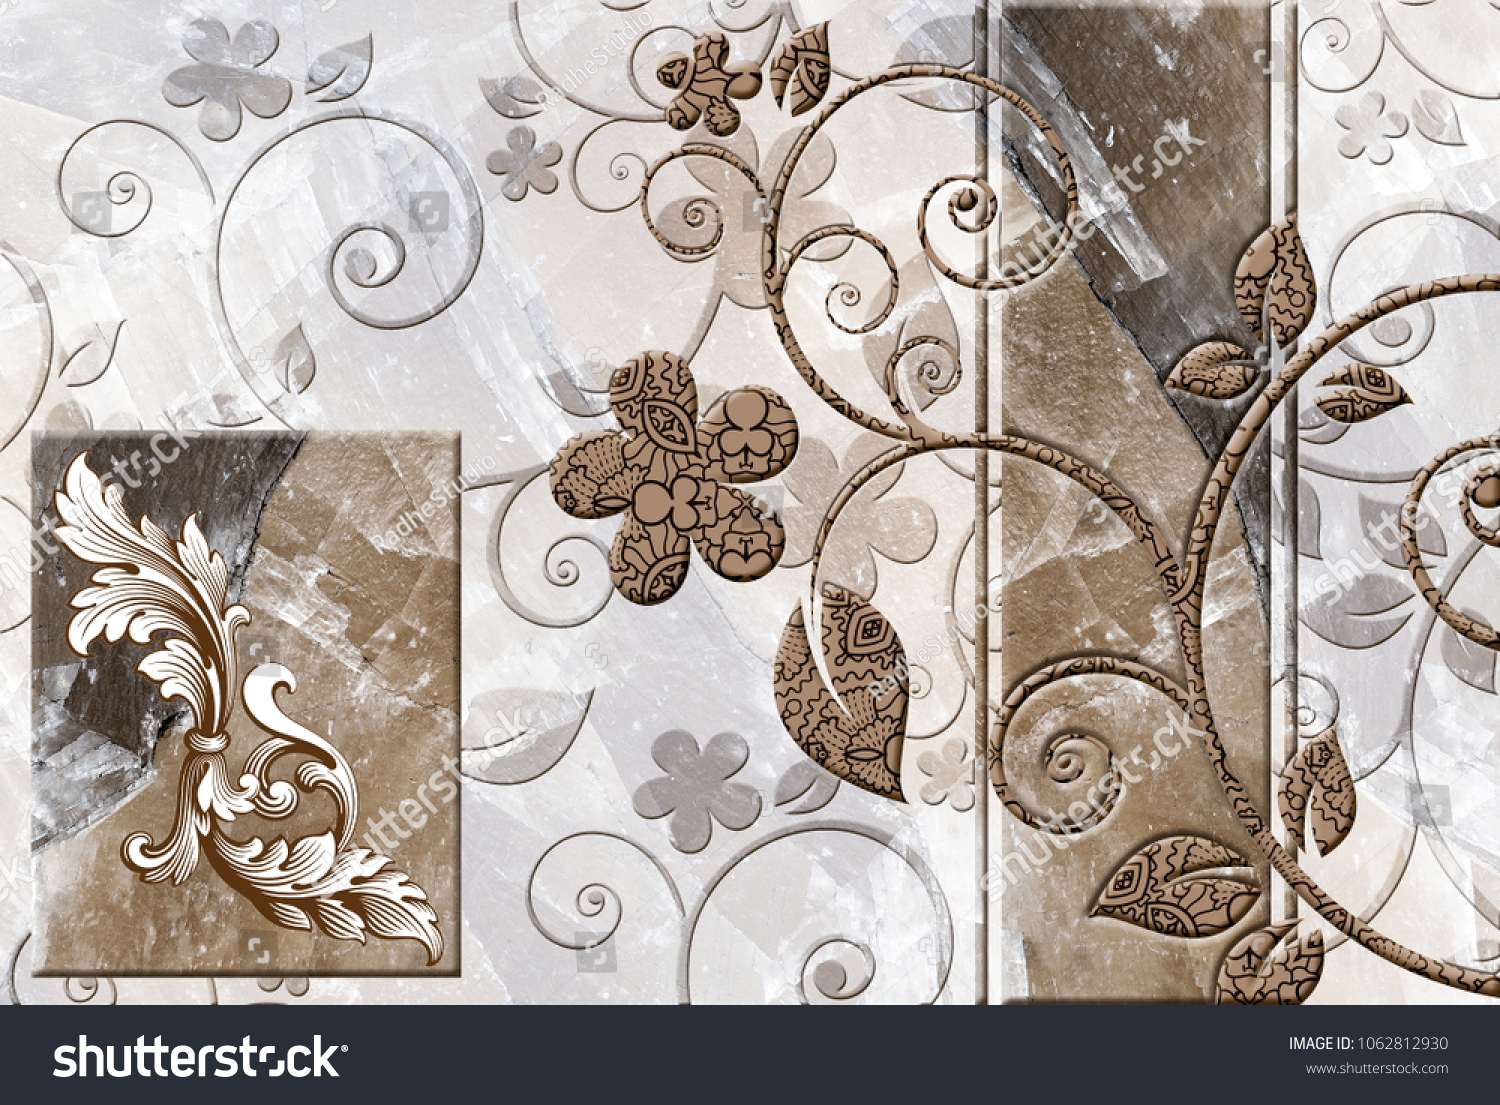 Marble Wall Floor Kitchen Bath Tile Stock Illustration 1062812930 ...